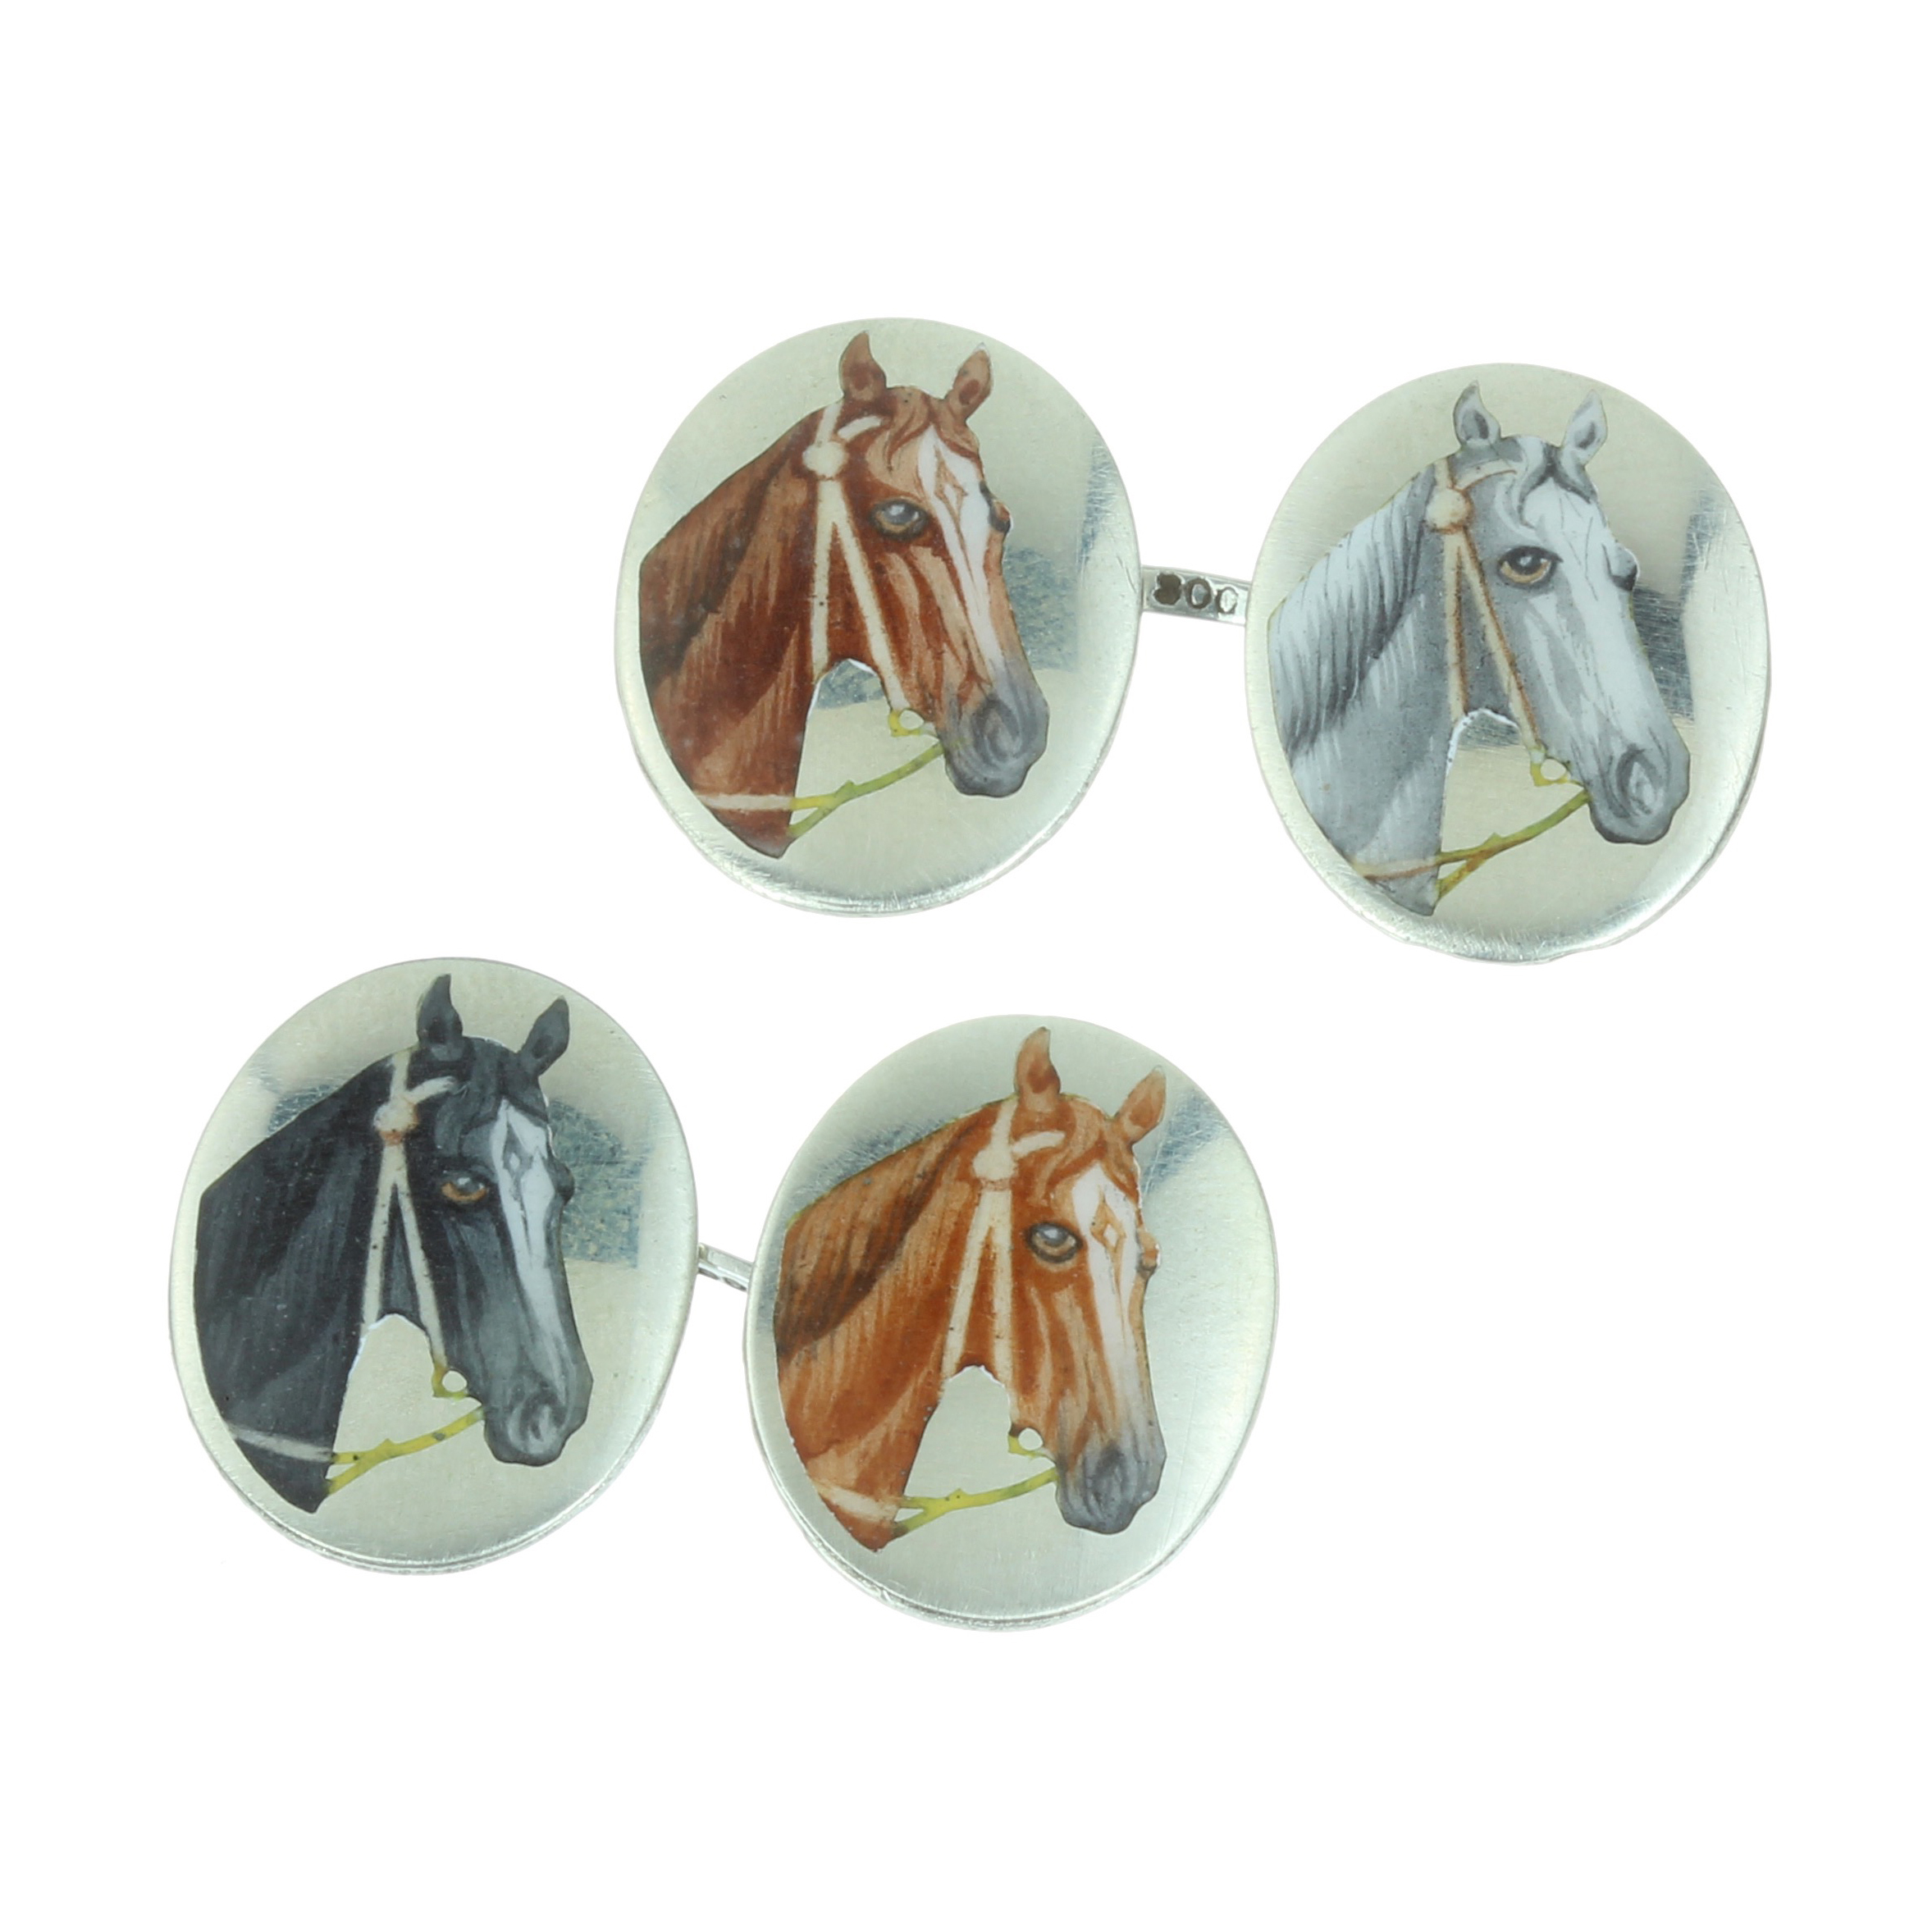 A PAIR OF ANTIQUE ENAMEL HORSE CUFFLINKS in silver, each formed of two oval faces decorated in